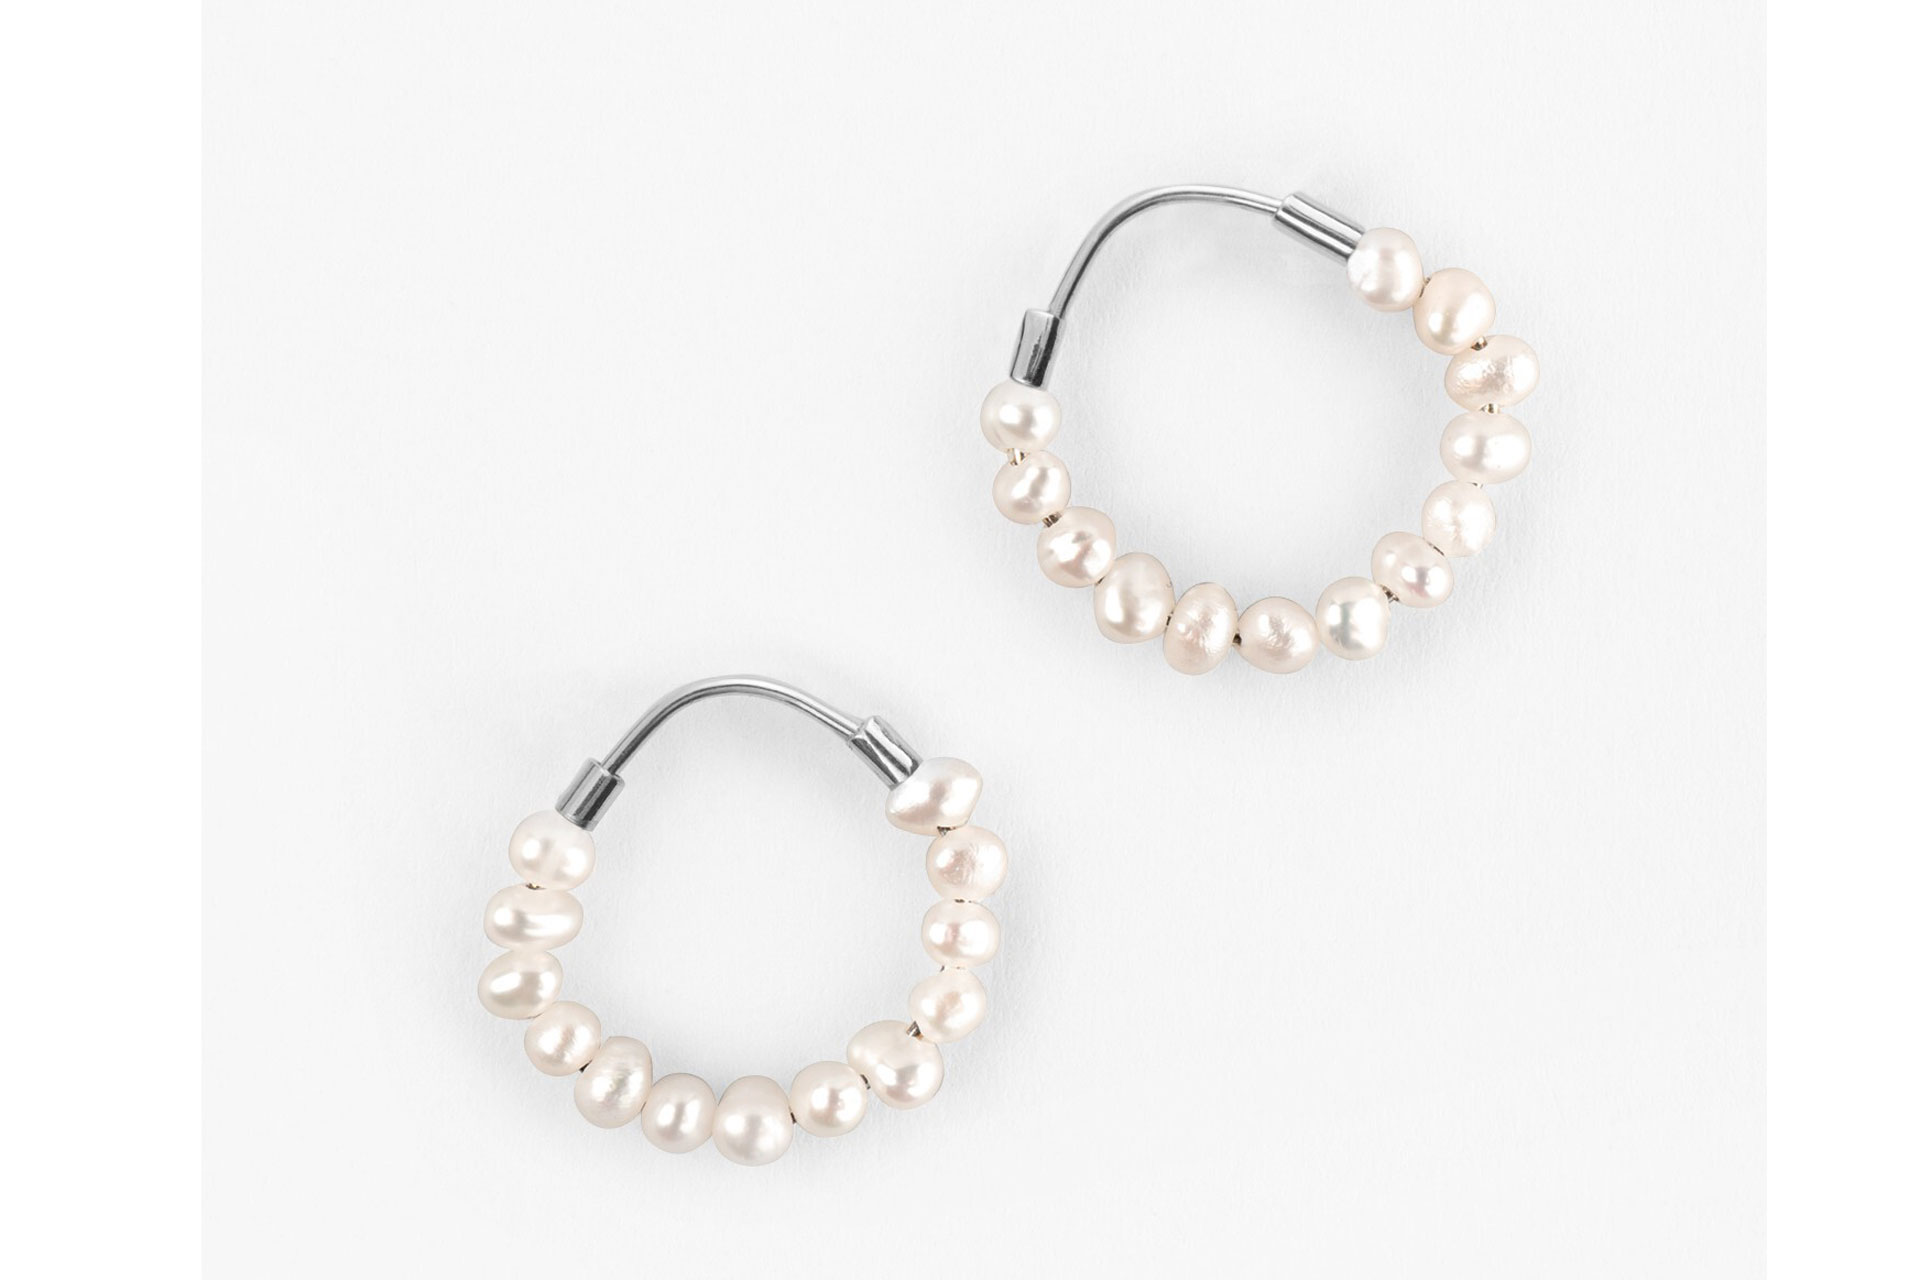 Hush Pearl Ring Earrings